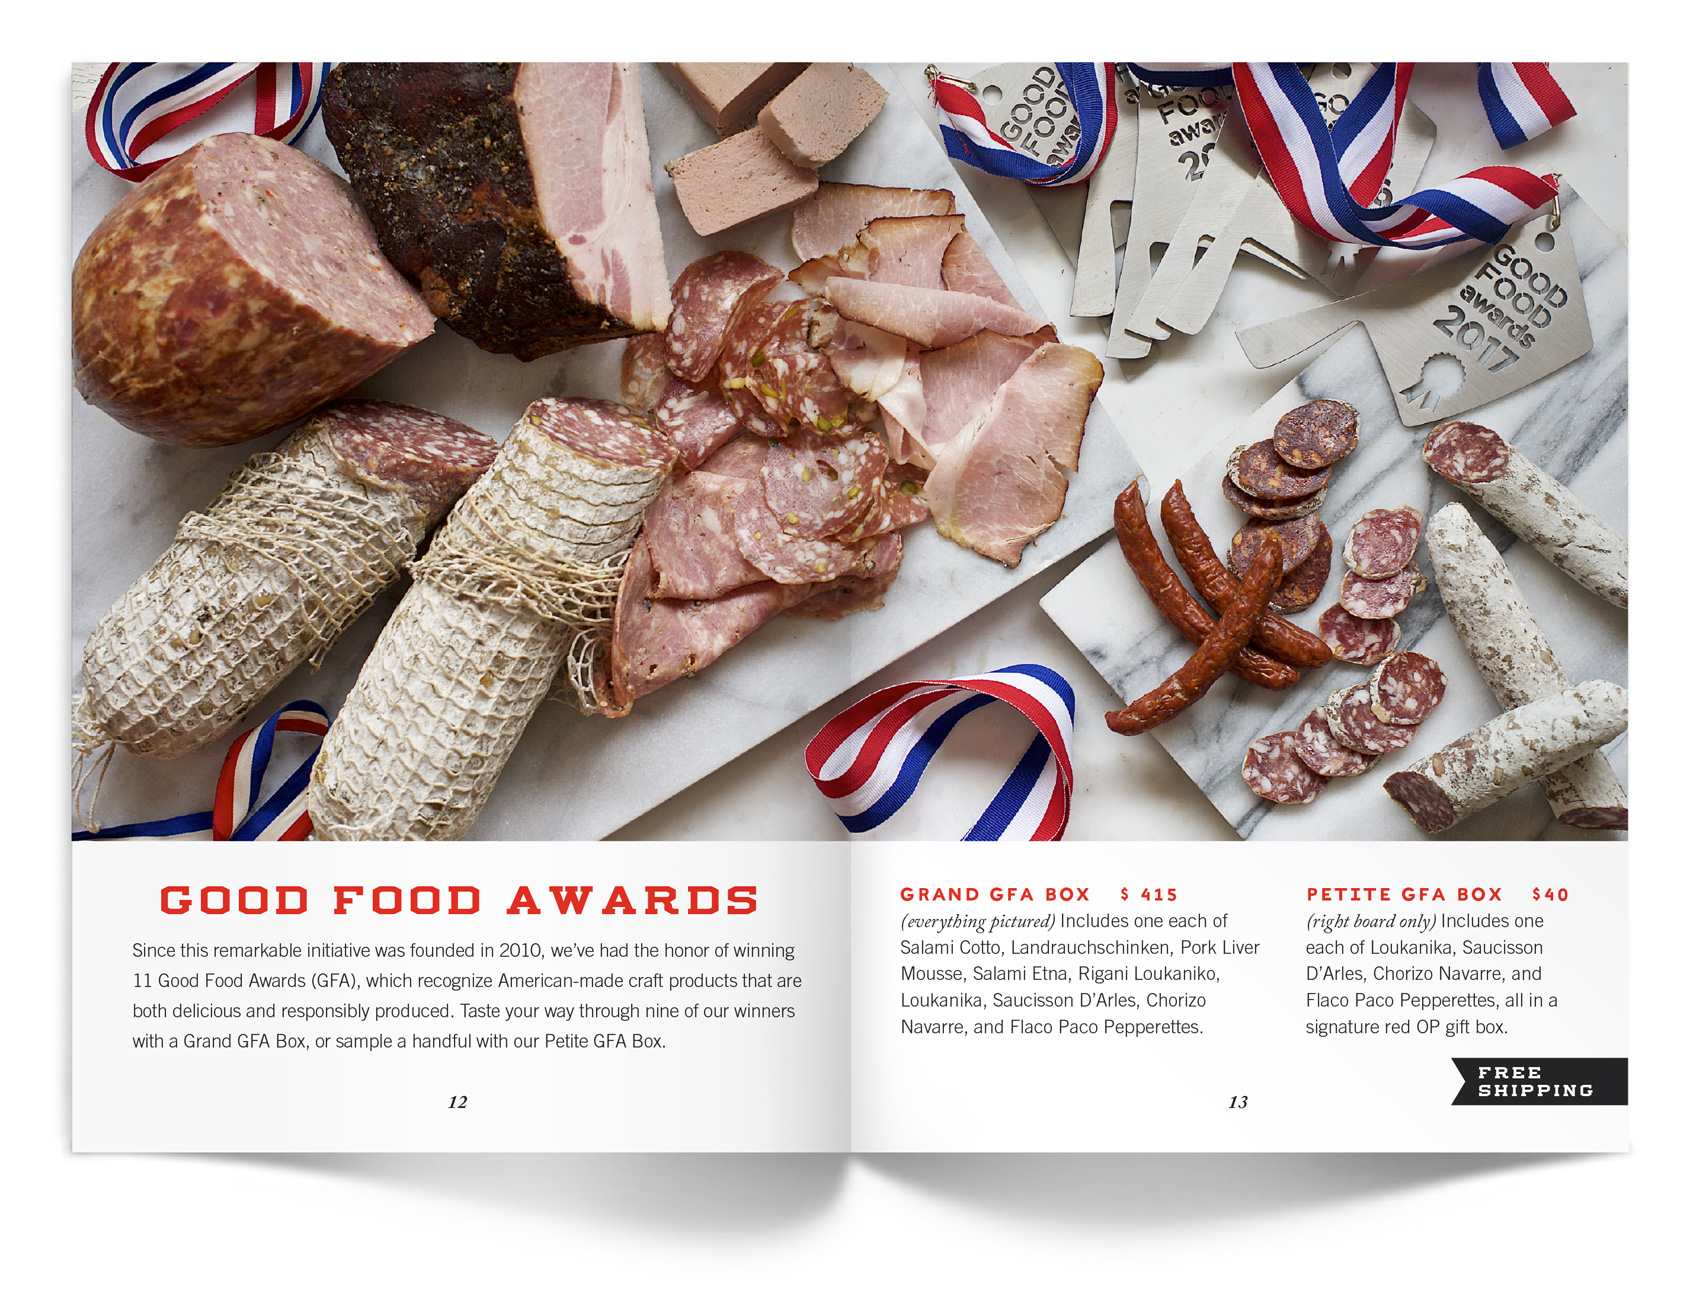 Olympia Provisions spread of Good Food Award winning charcuterie.